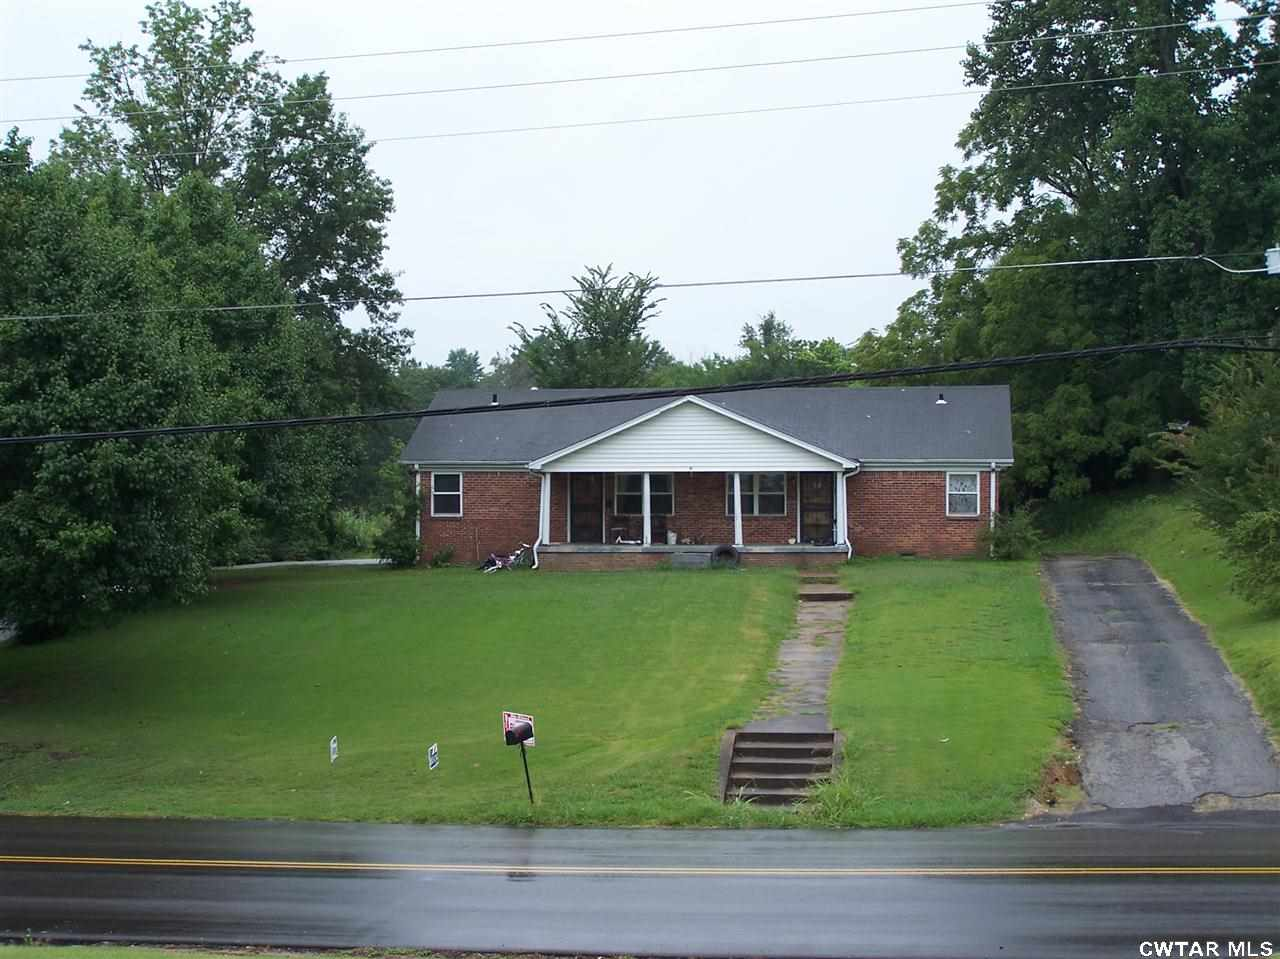 71 N Main Street,Lexington,Tennessee 38351,4 Bedrooms Bedrooms,2 BathroomsBathrooms,Residential,71 N Main Street,157920